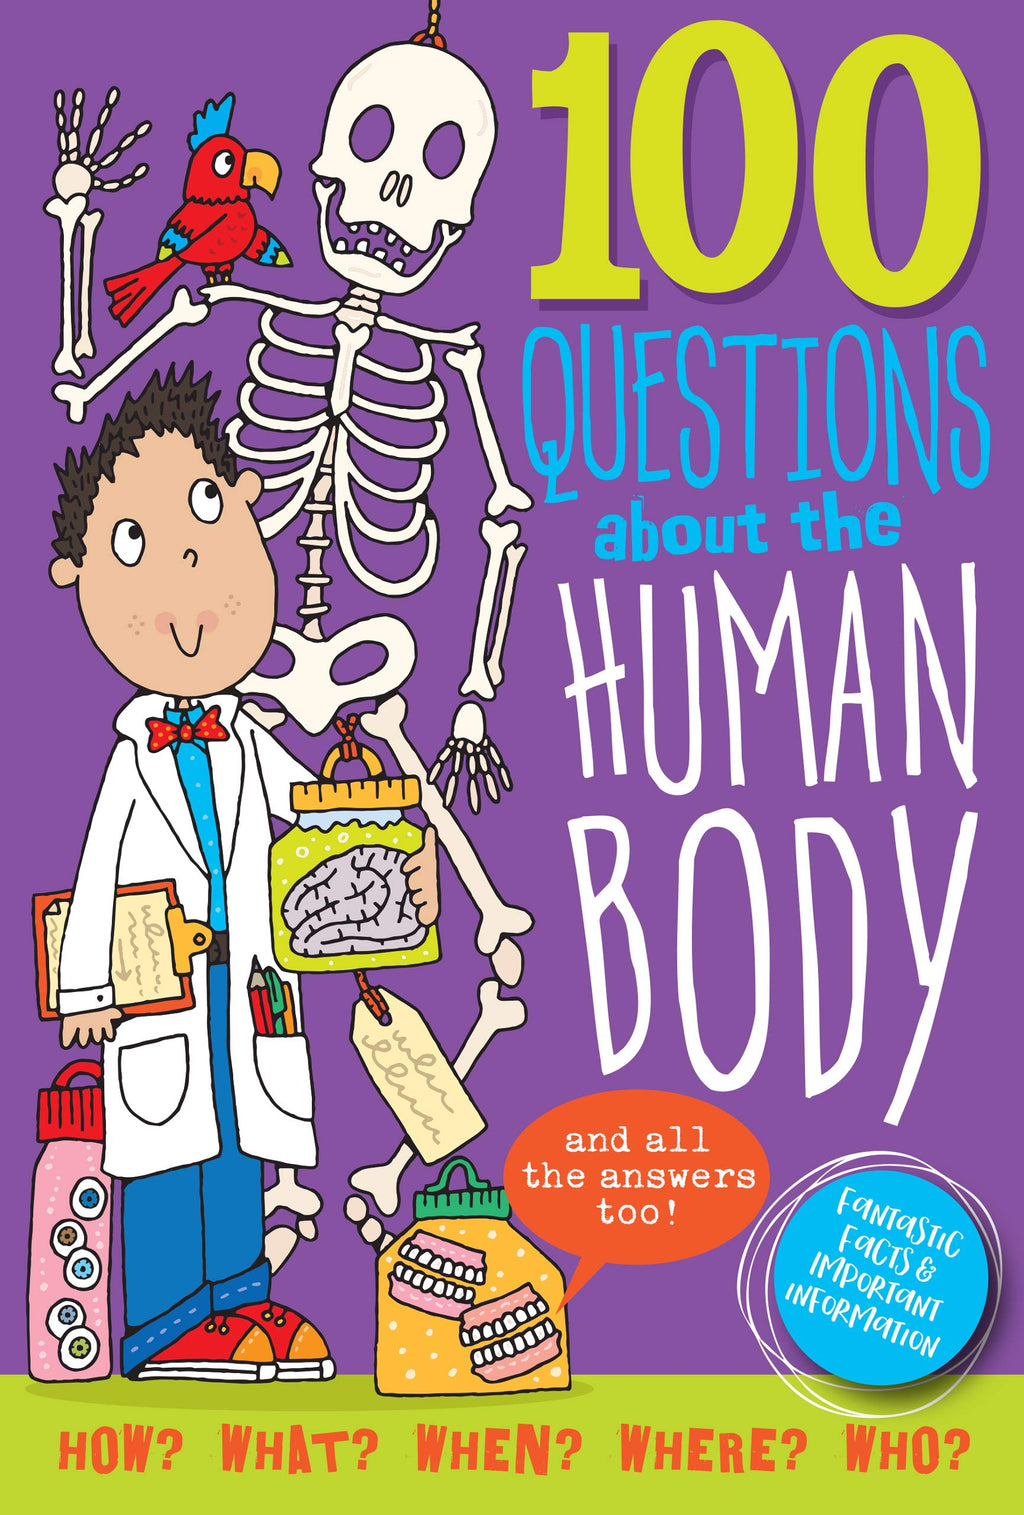 Peter Pauper - 100 Questions about the Human Body